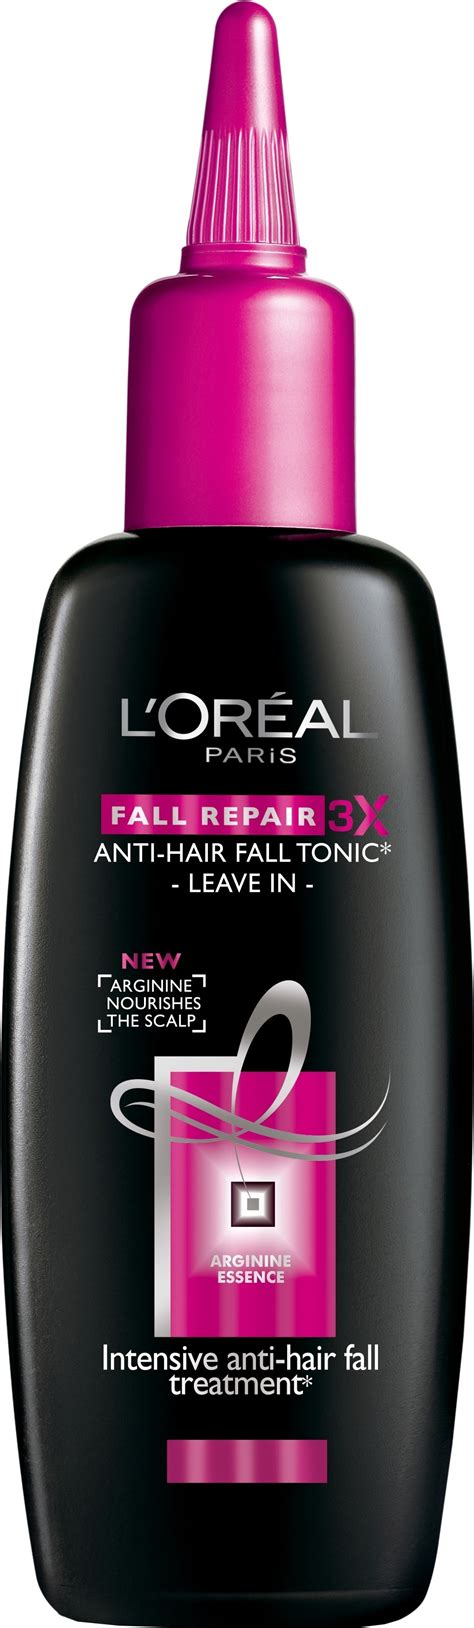 L 'Oreal Paris Fall Repair Anti-hairfall Tonic - Leave In ... L'oreal India